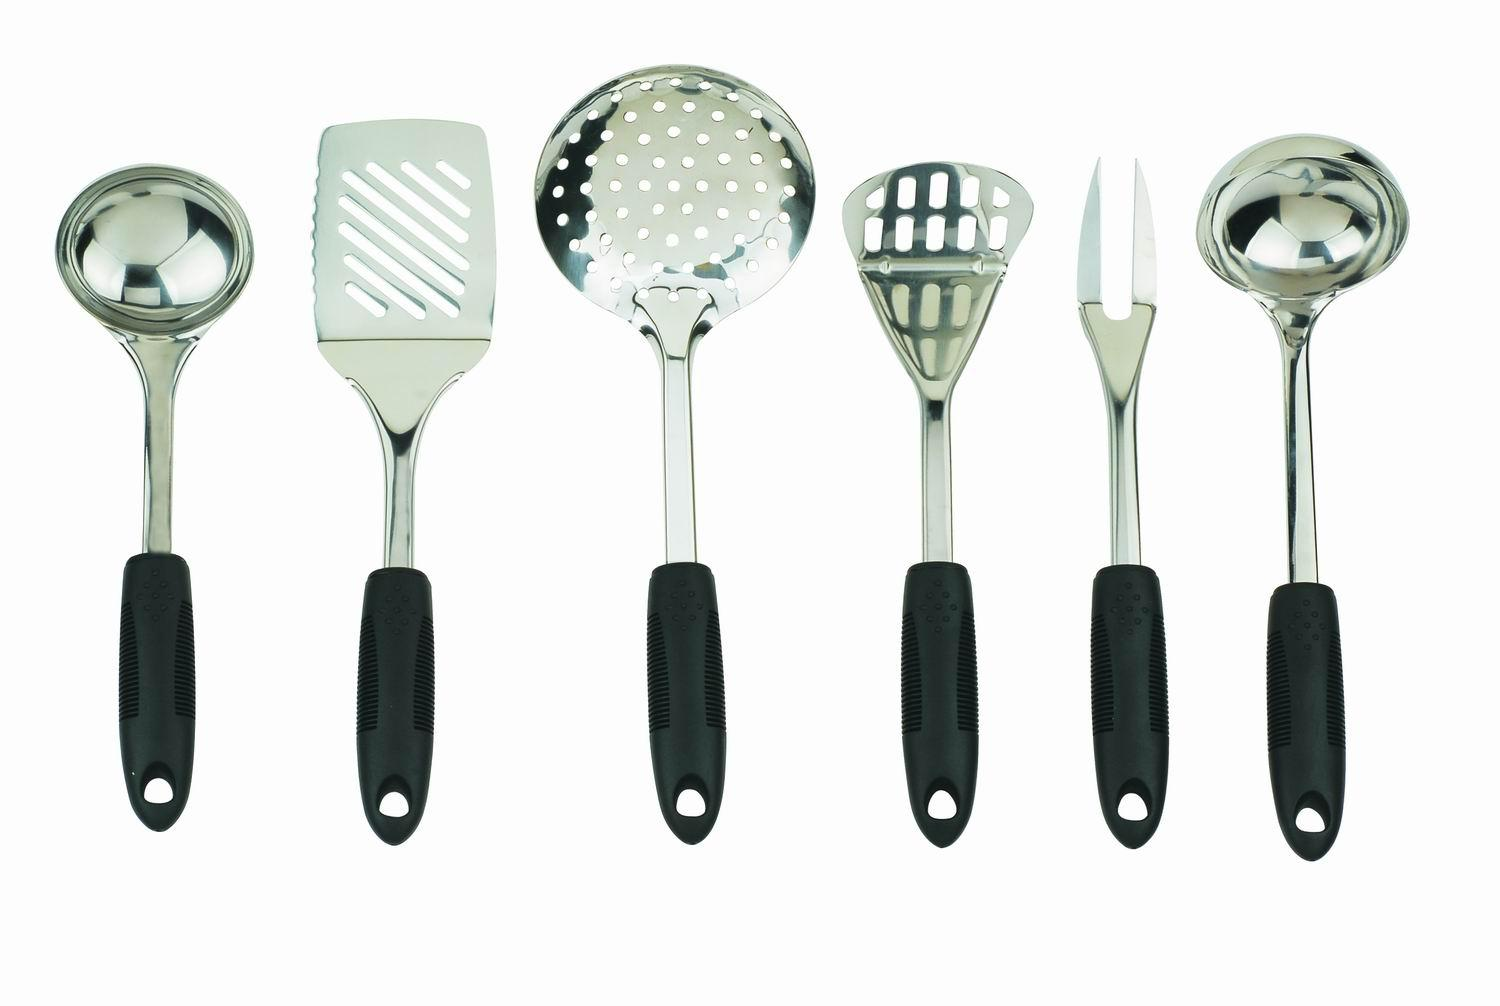 Kitchen equipment and their uses - Stainless Steel Utensils